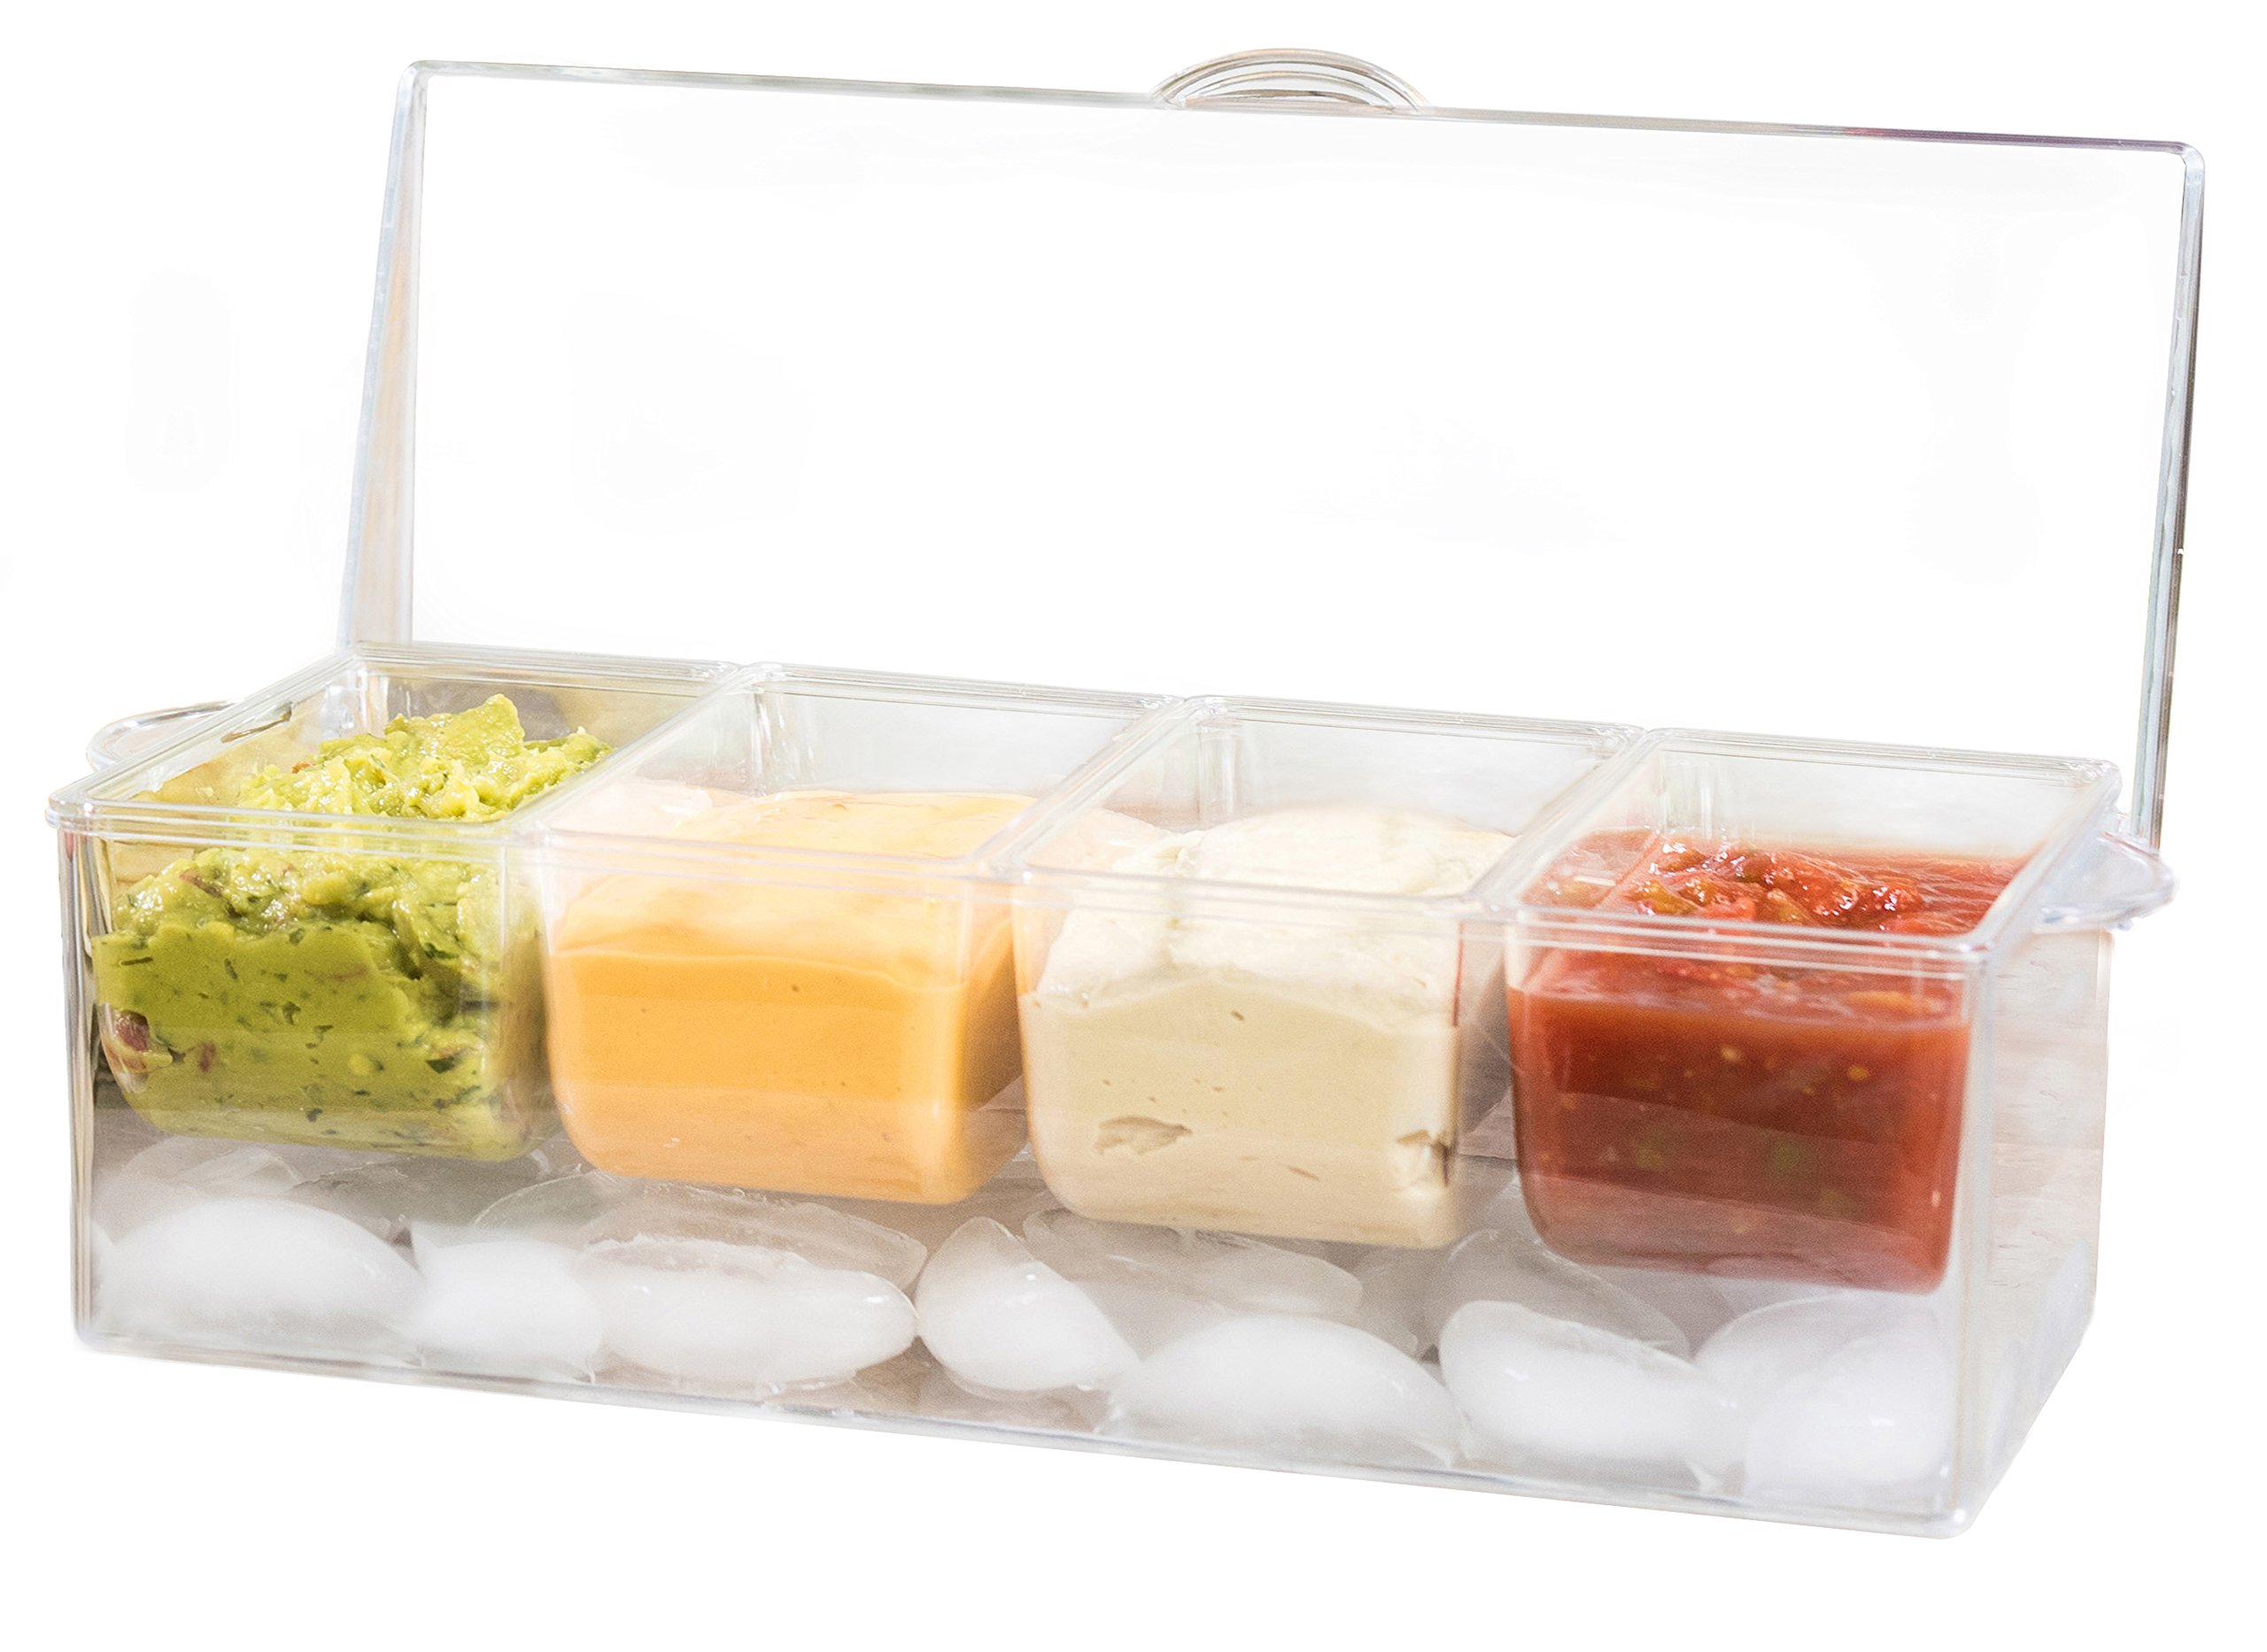 Adorn Home Ice Chilled Large Condiment Server | 4 Compartment on Ice Caddy | 4 Removable Dishes with over 20 Oz. Capacity Each with Hinged Lid | Crystal Clear Plasic